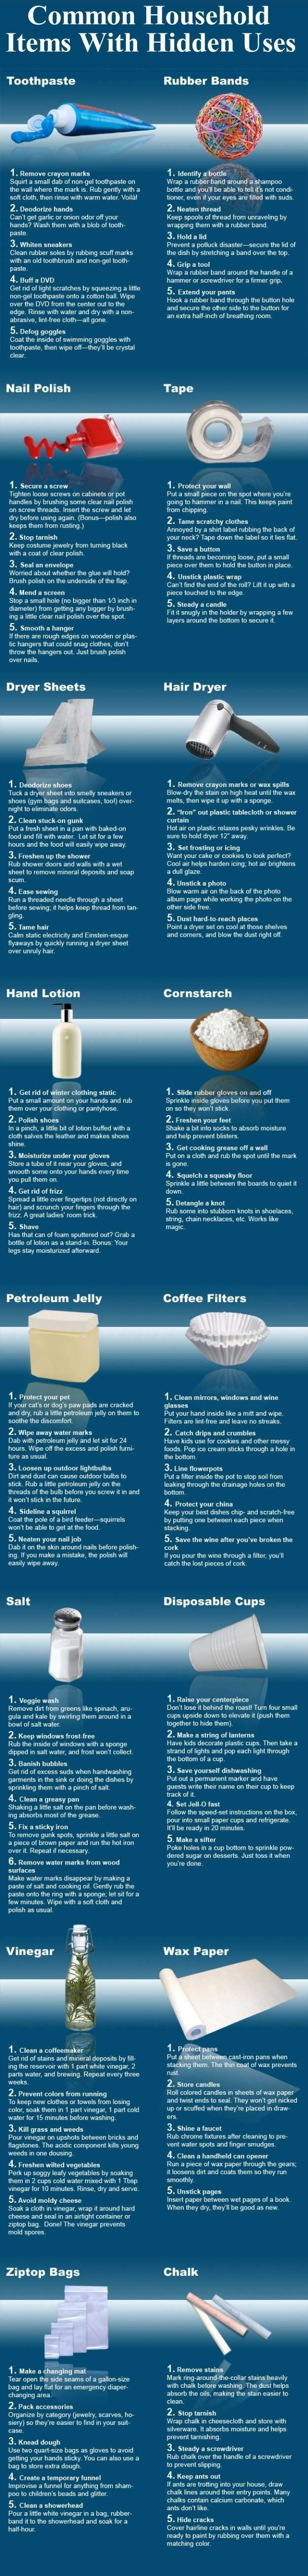 Smart uses for common household items you may not know about infographic - Household items use ...